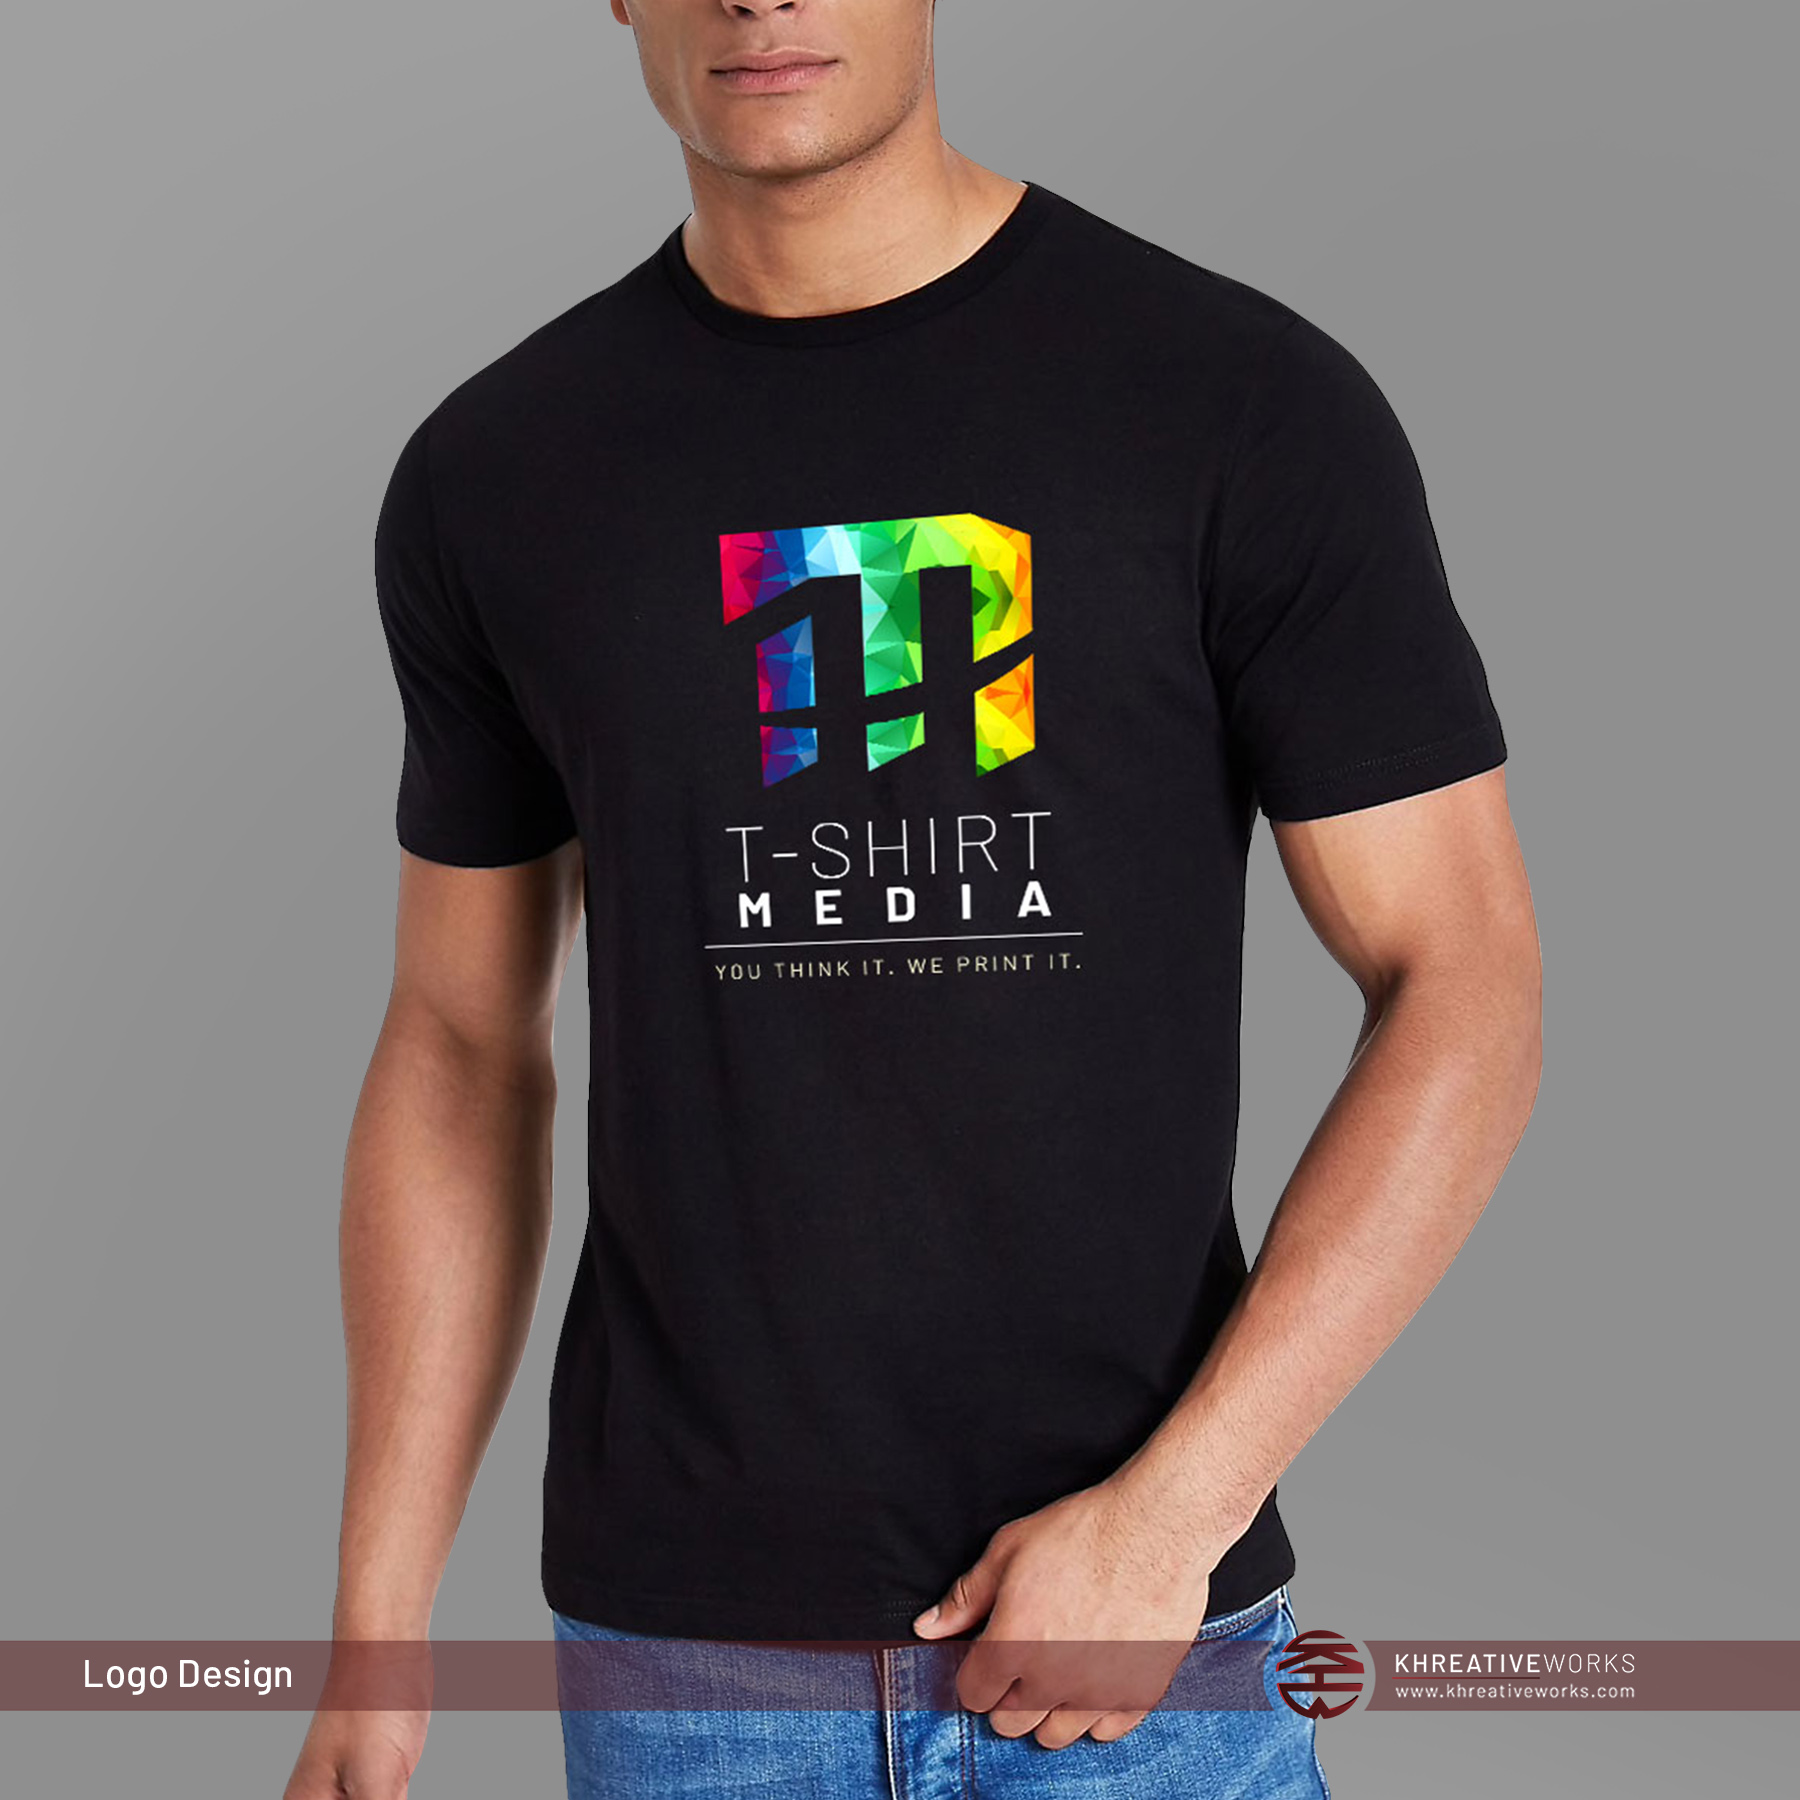 T-Shirt Media Logo Design